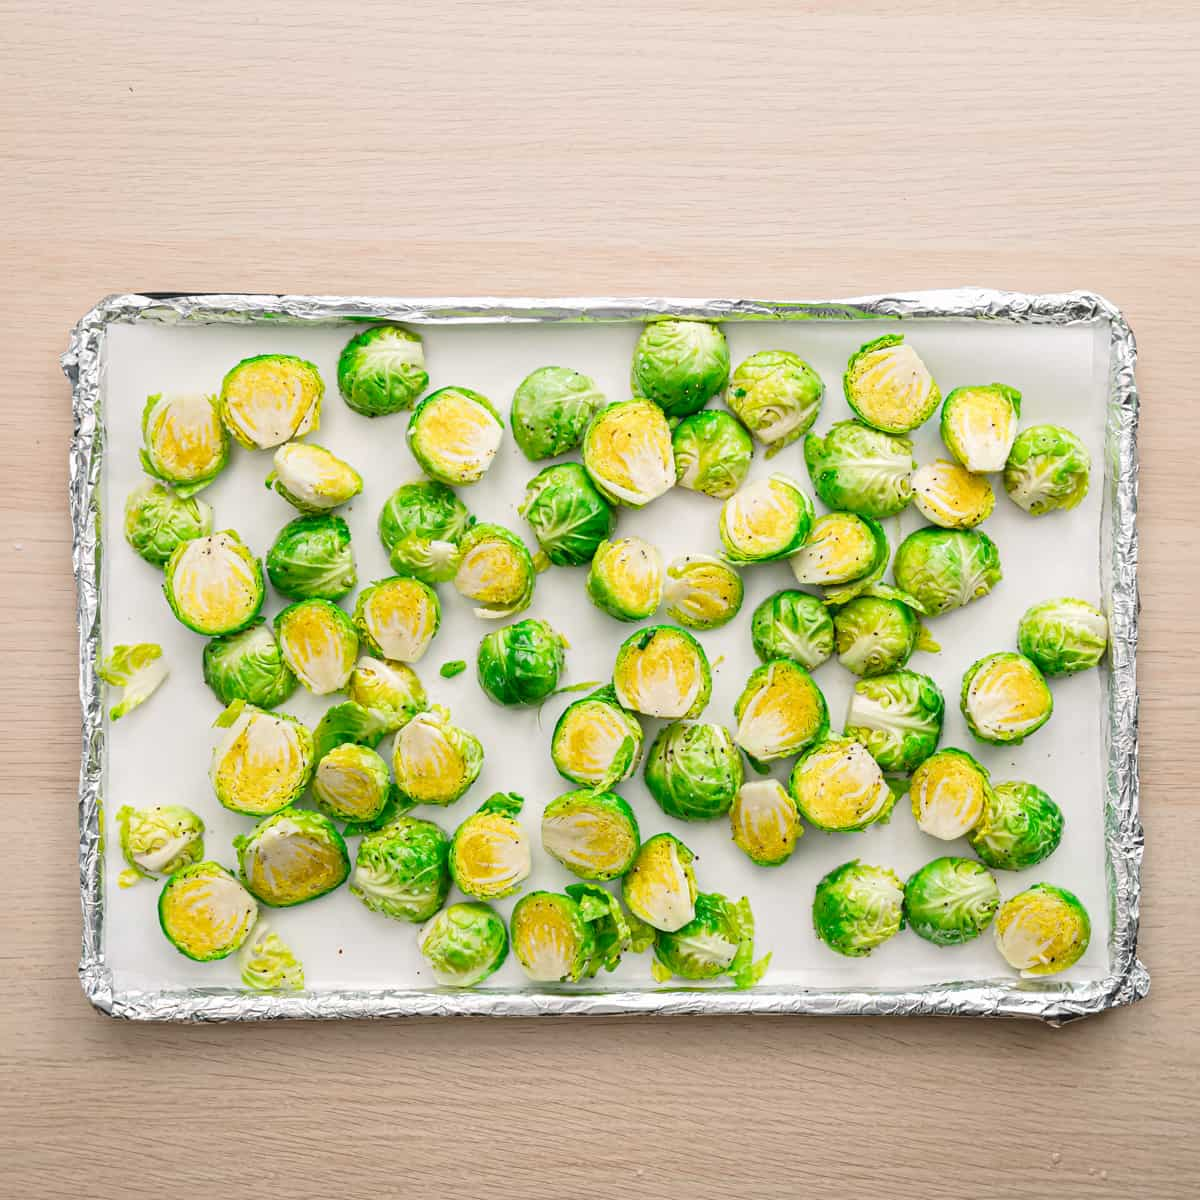 Brussels sprouts on a prepared baking sheet.